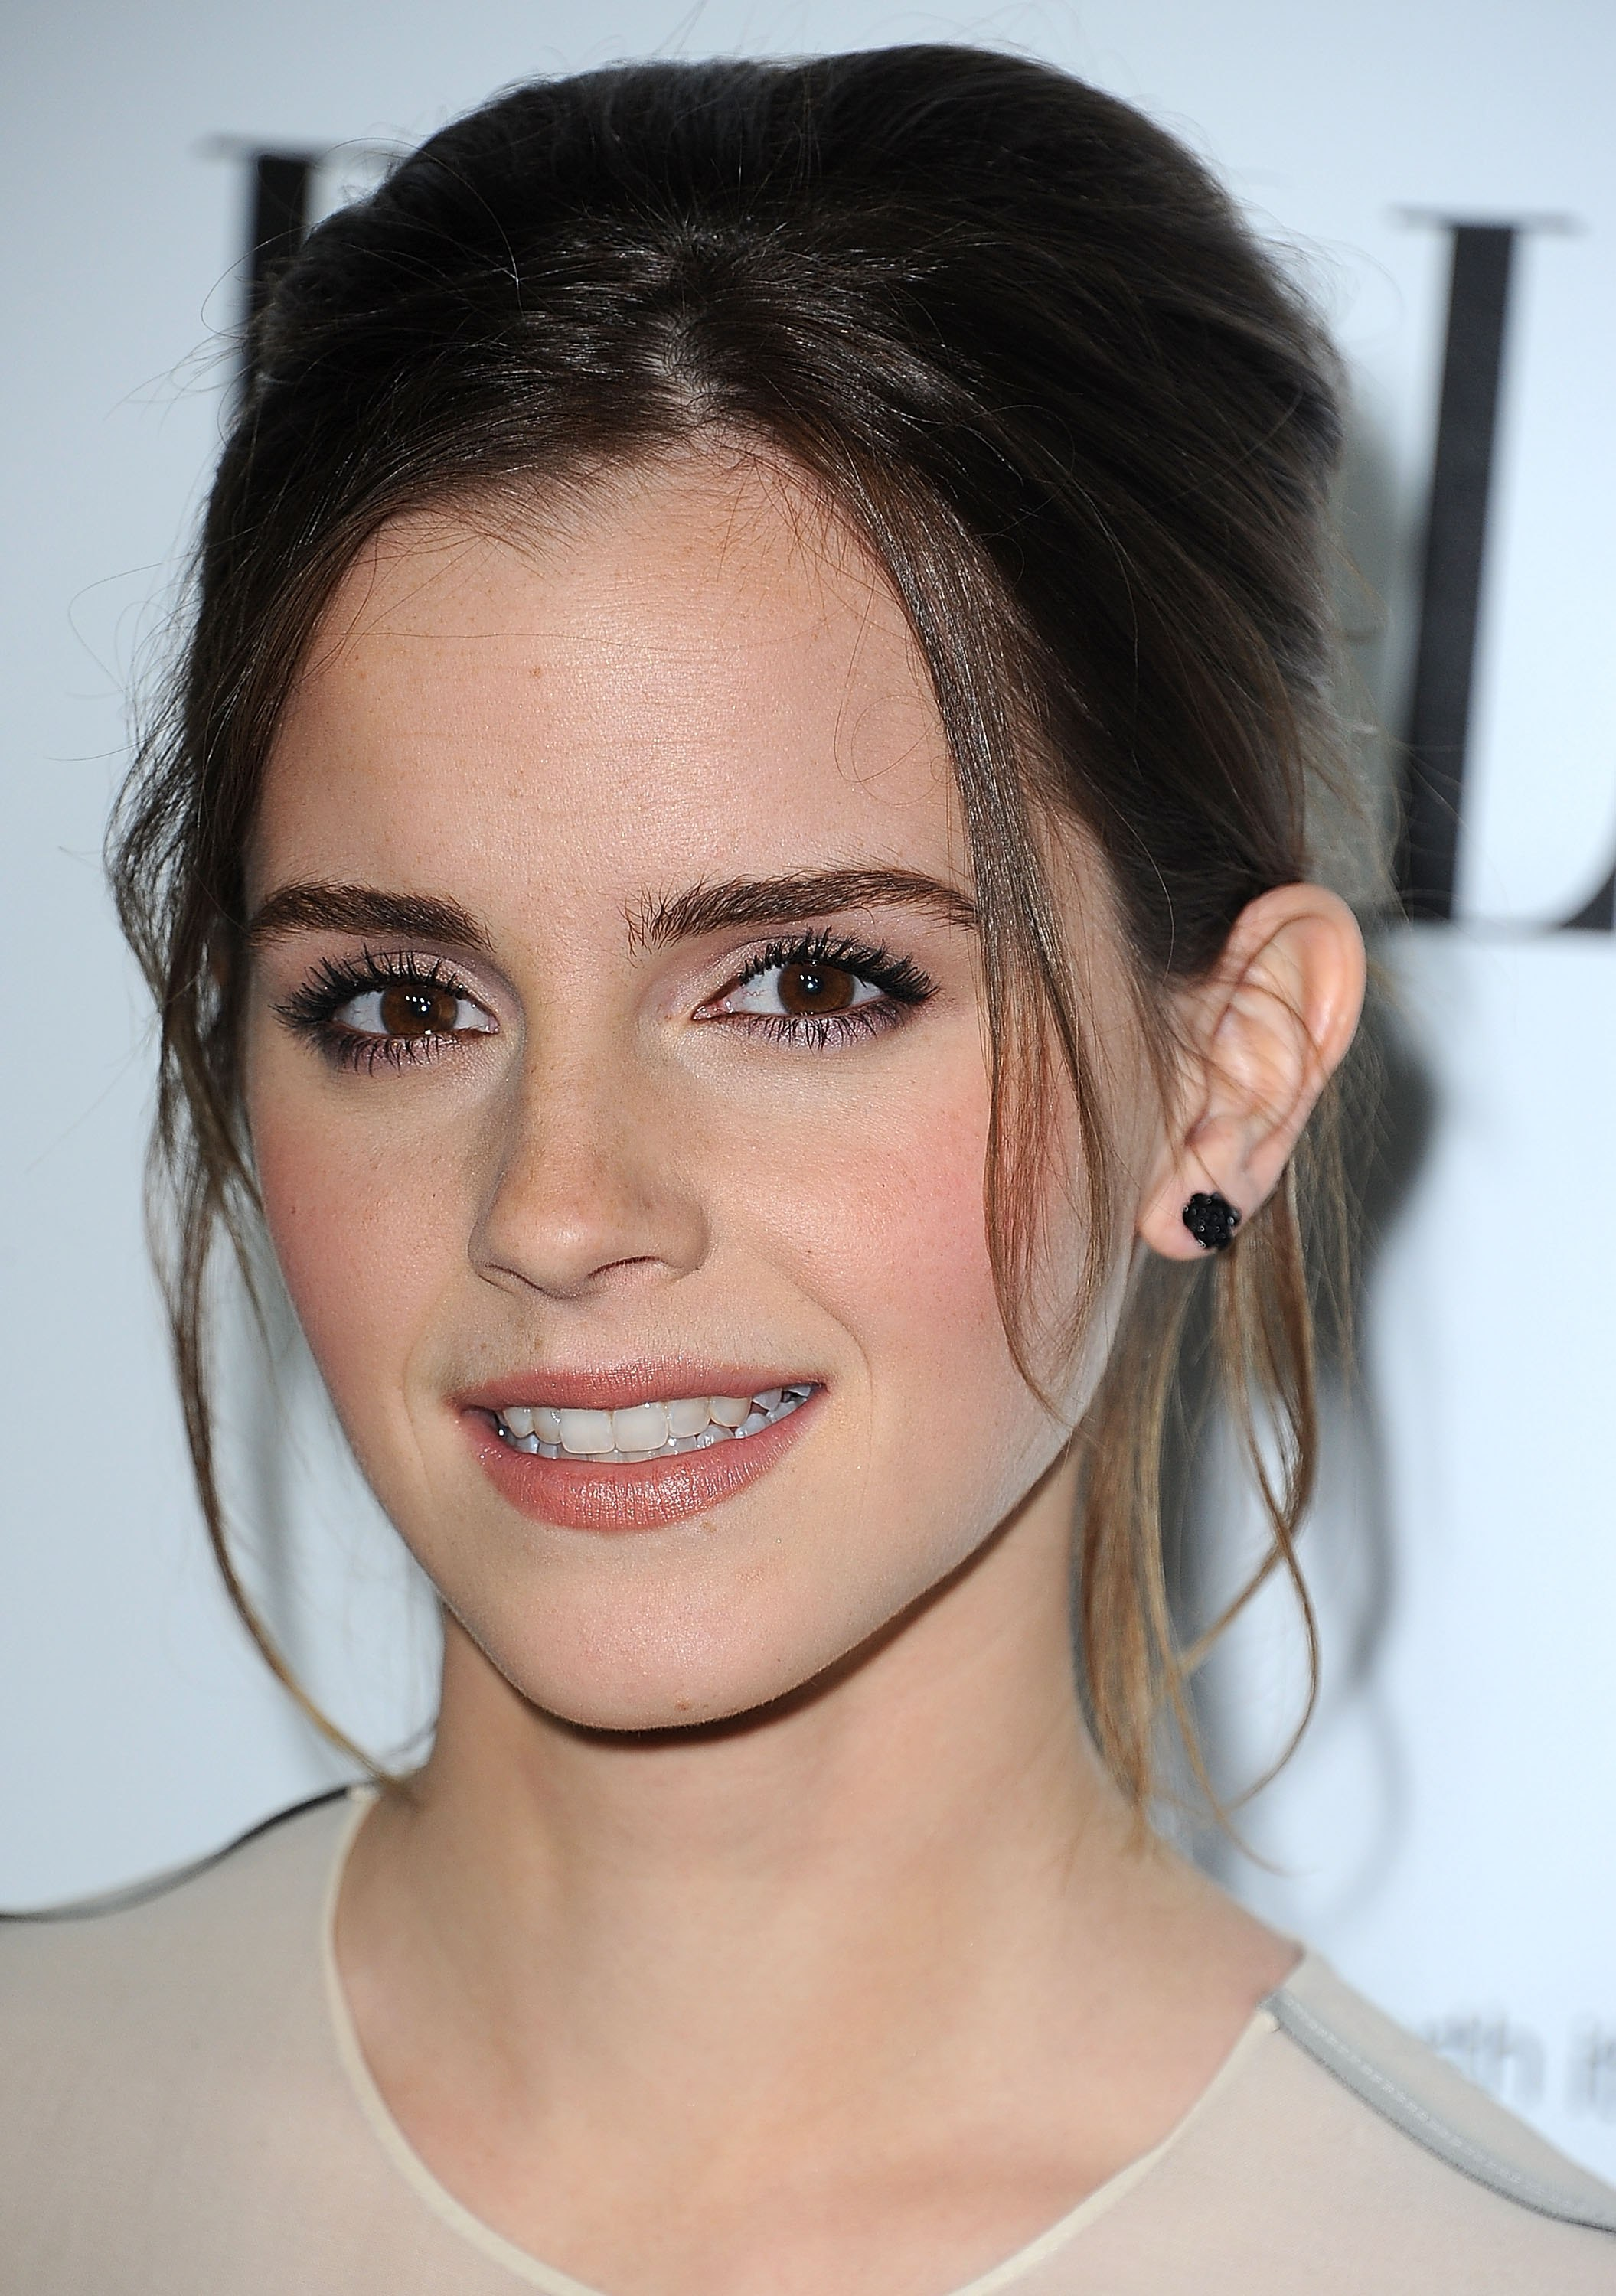 ELLE's 19th Annual Women In Hollywood Celebration (15.10.2012)